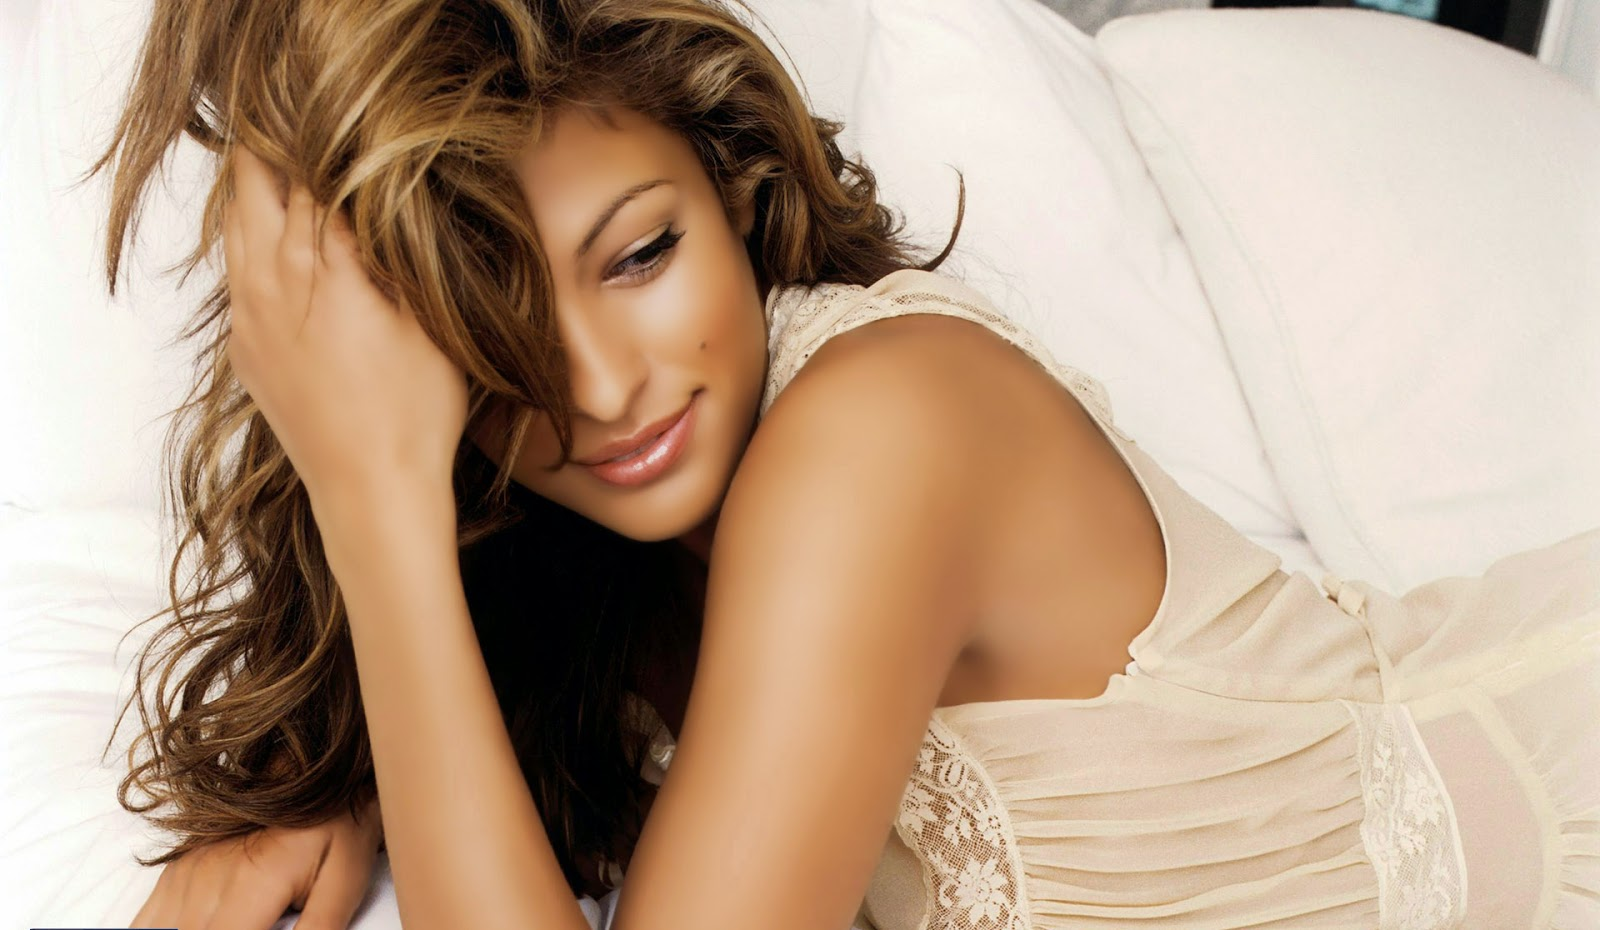 Eva mendes beautiful hair style wallpaper